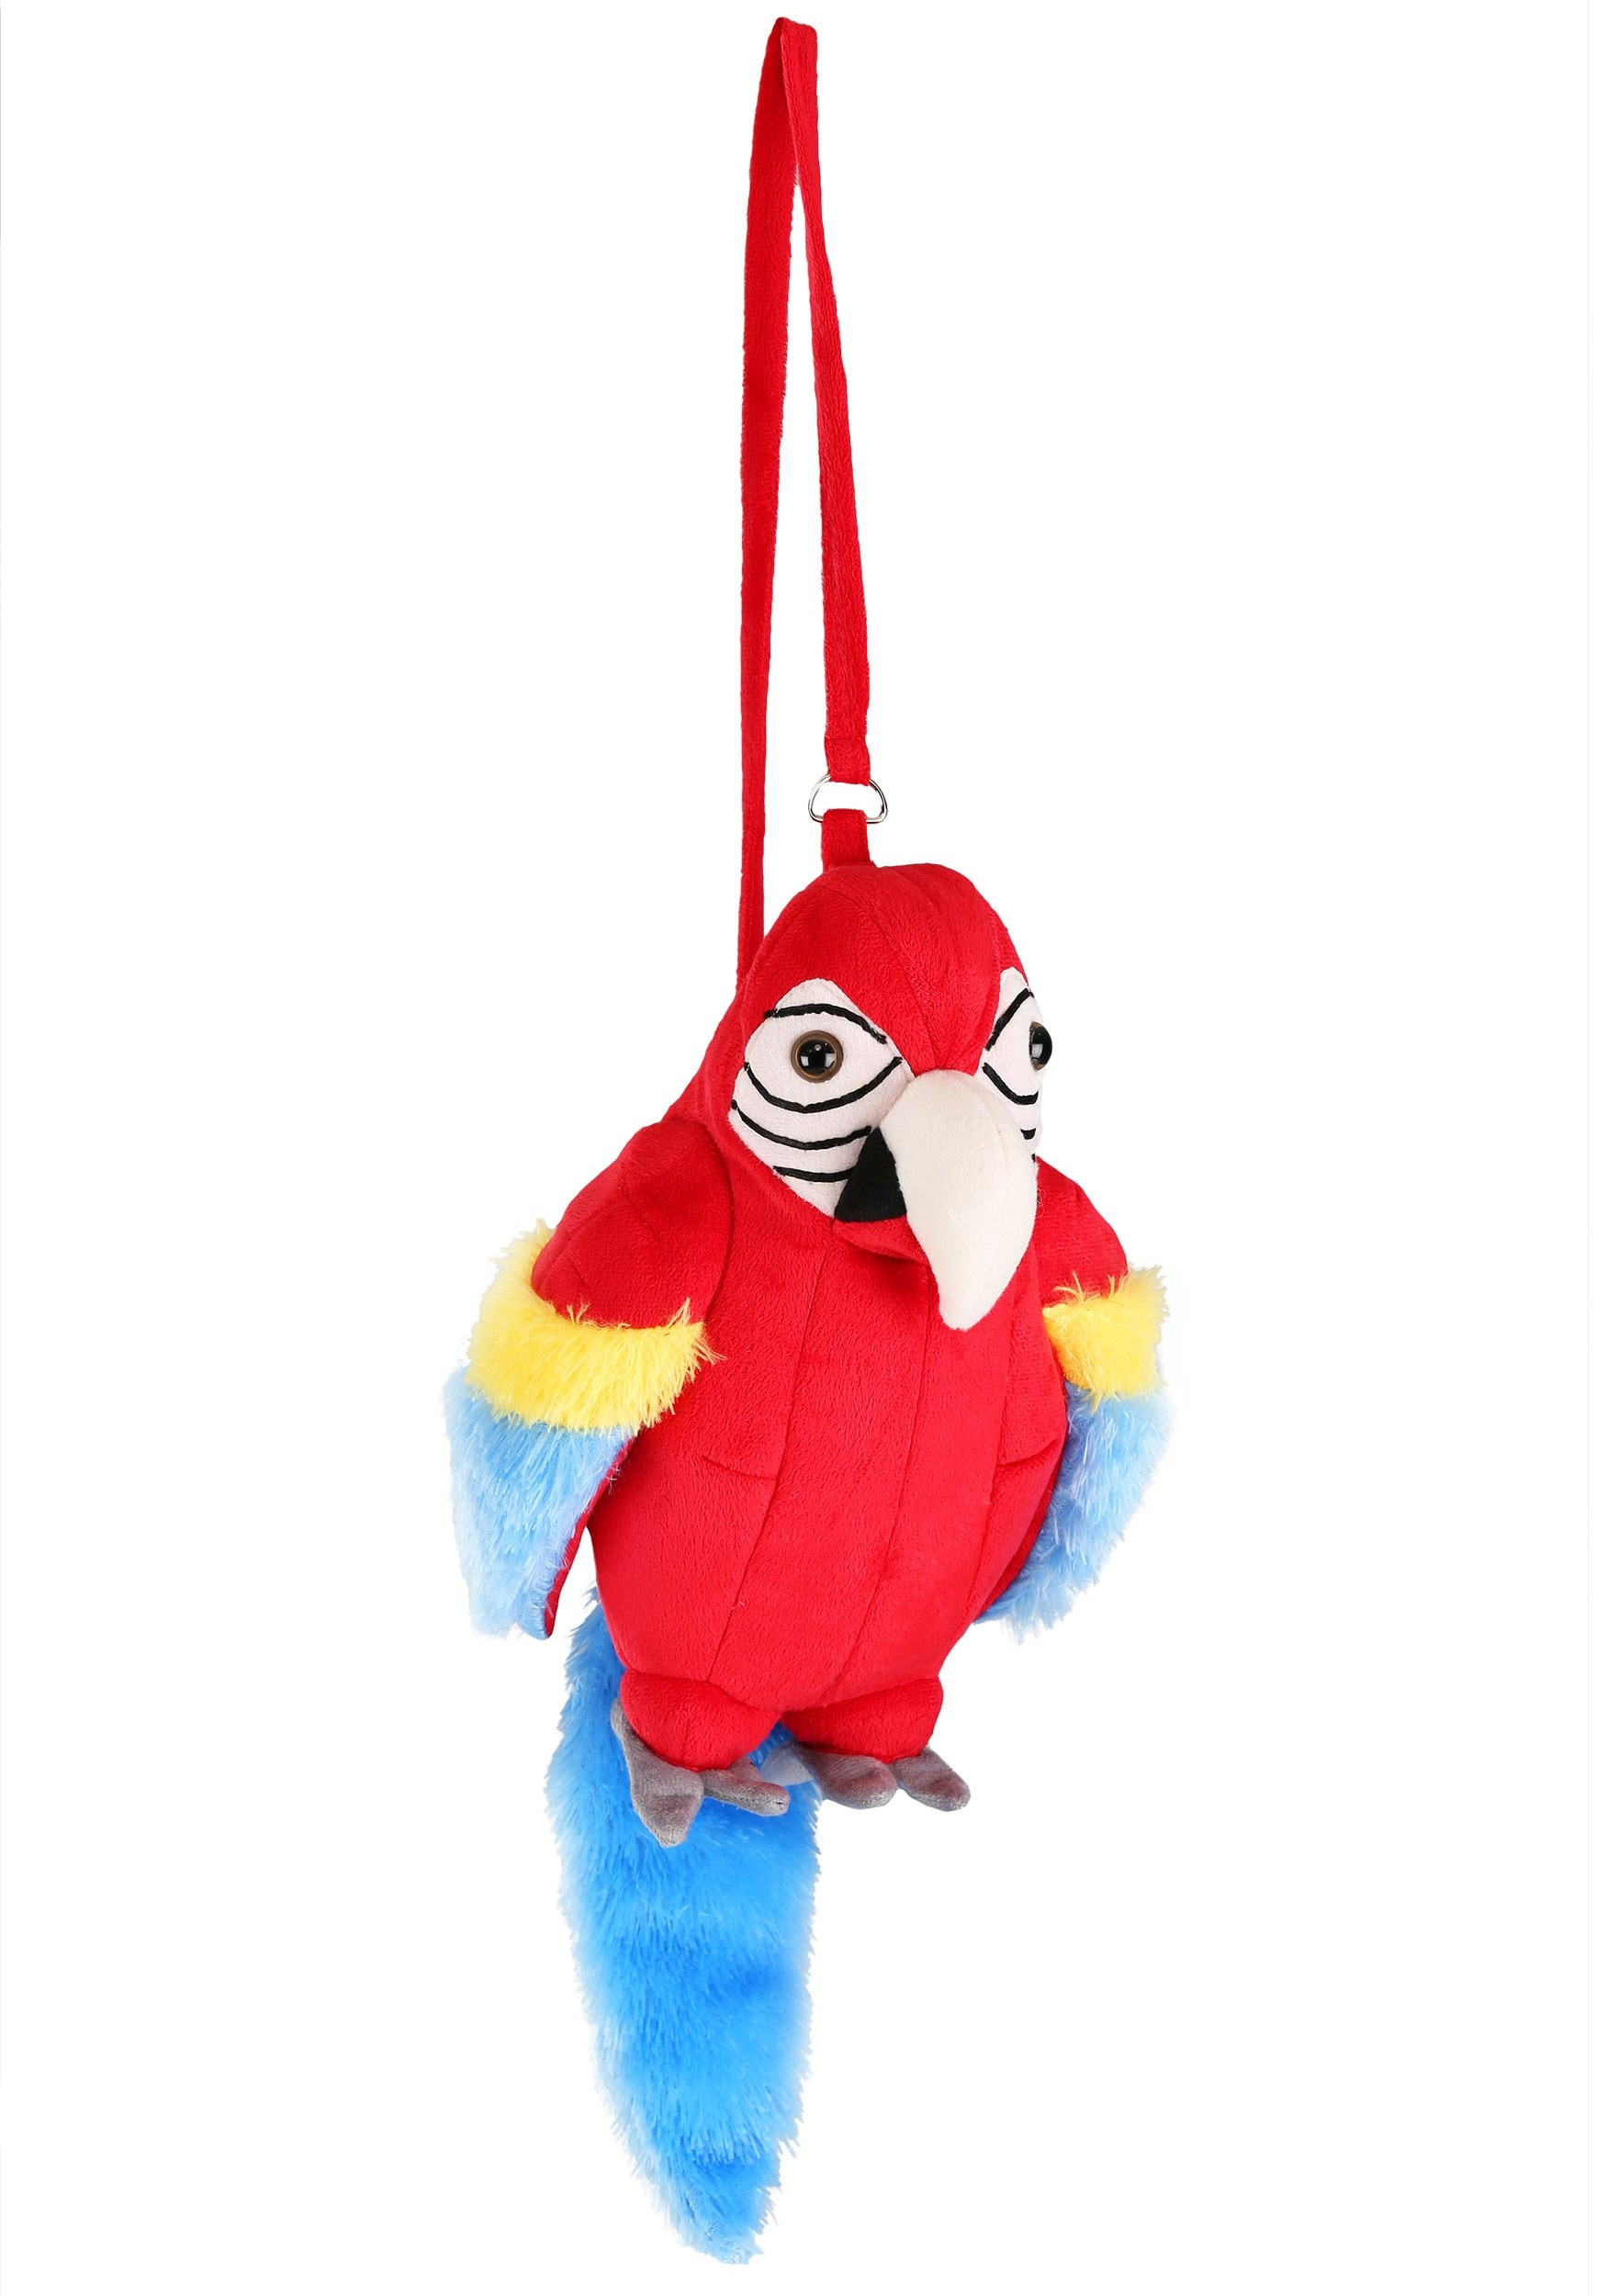 POLLY PARROT PIRATE WENCH PURSE HANDBAG HALLOWEEN COSTUME ACCESSORY